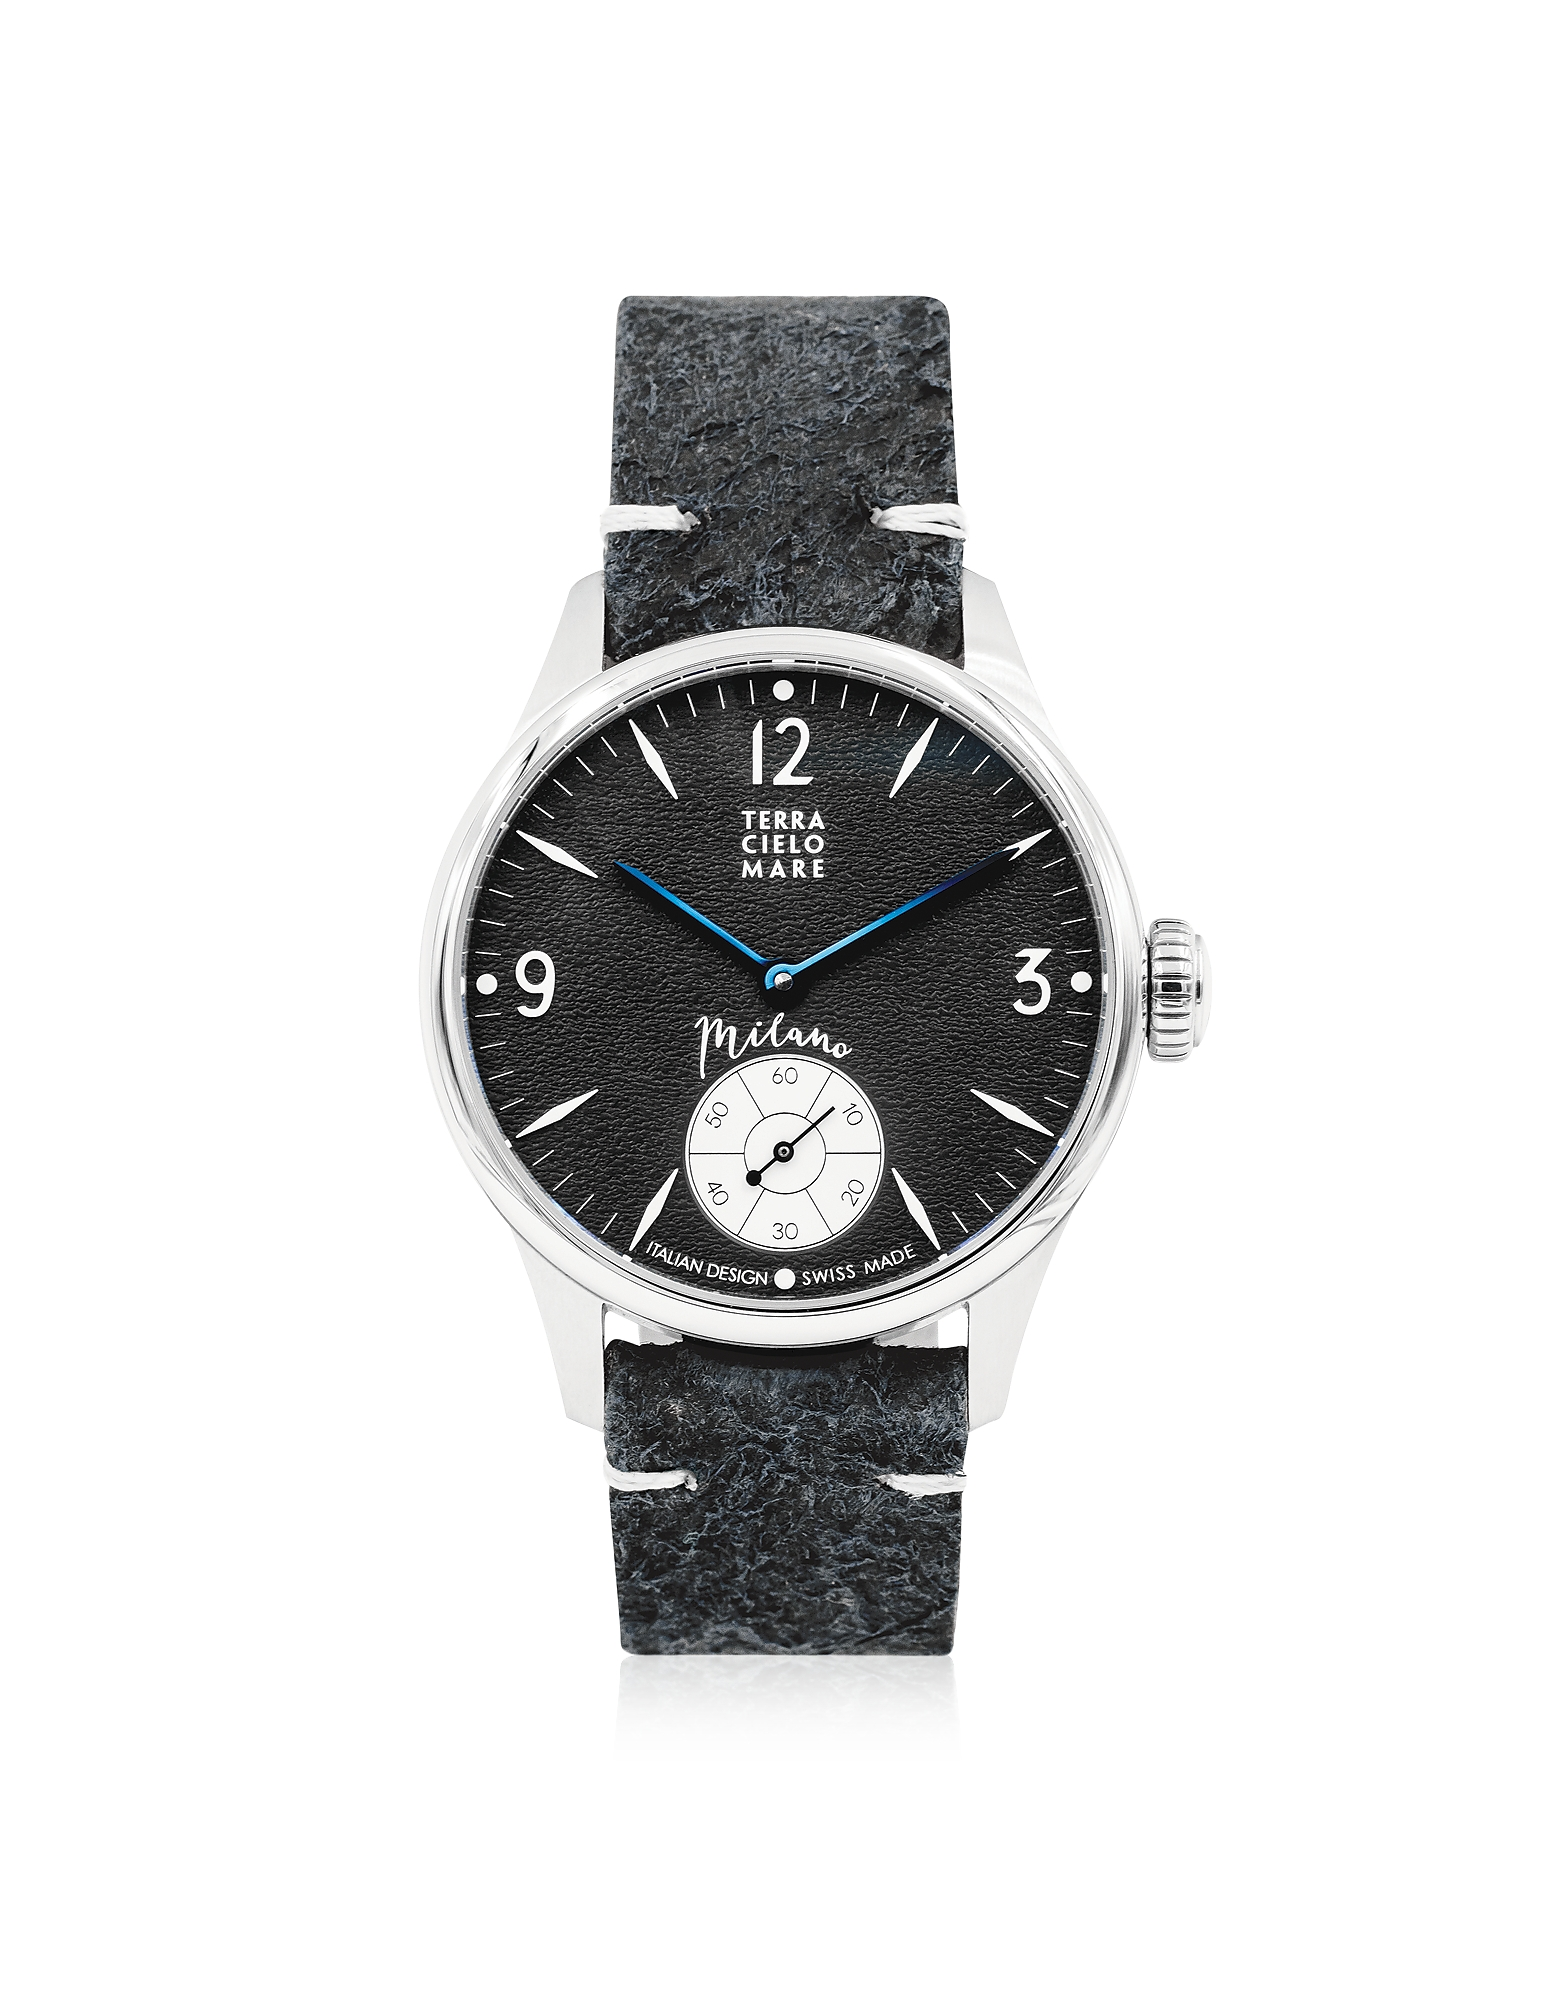 Terra Cielo Mare Men's Watches, Milano Classic Watch